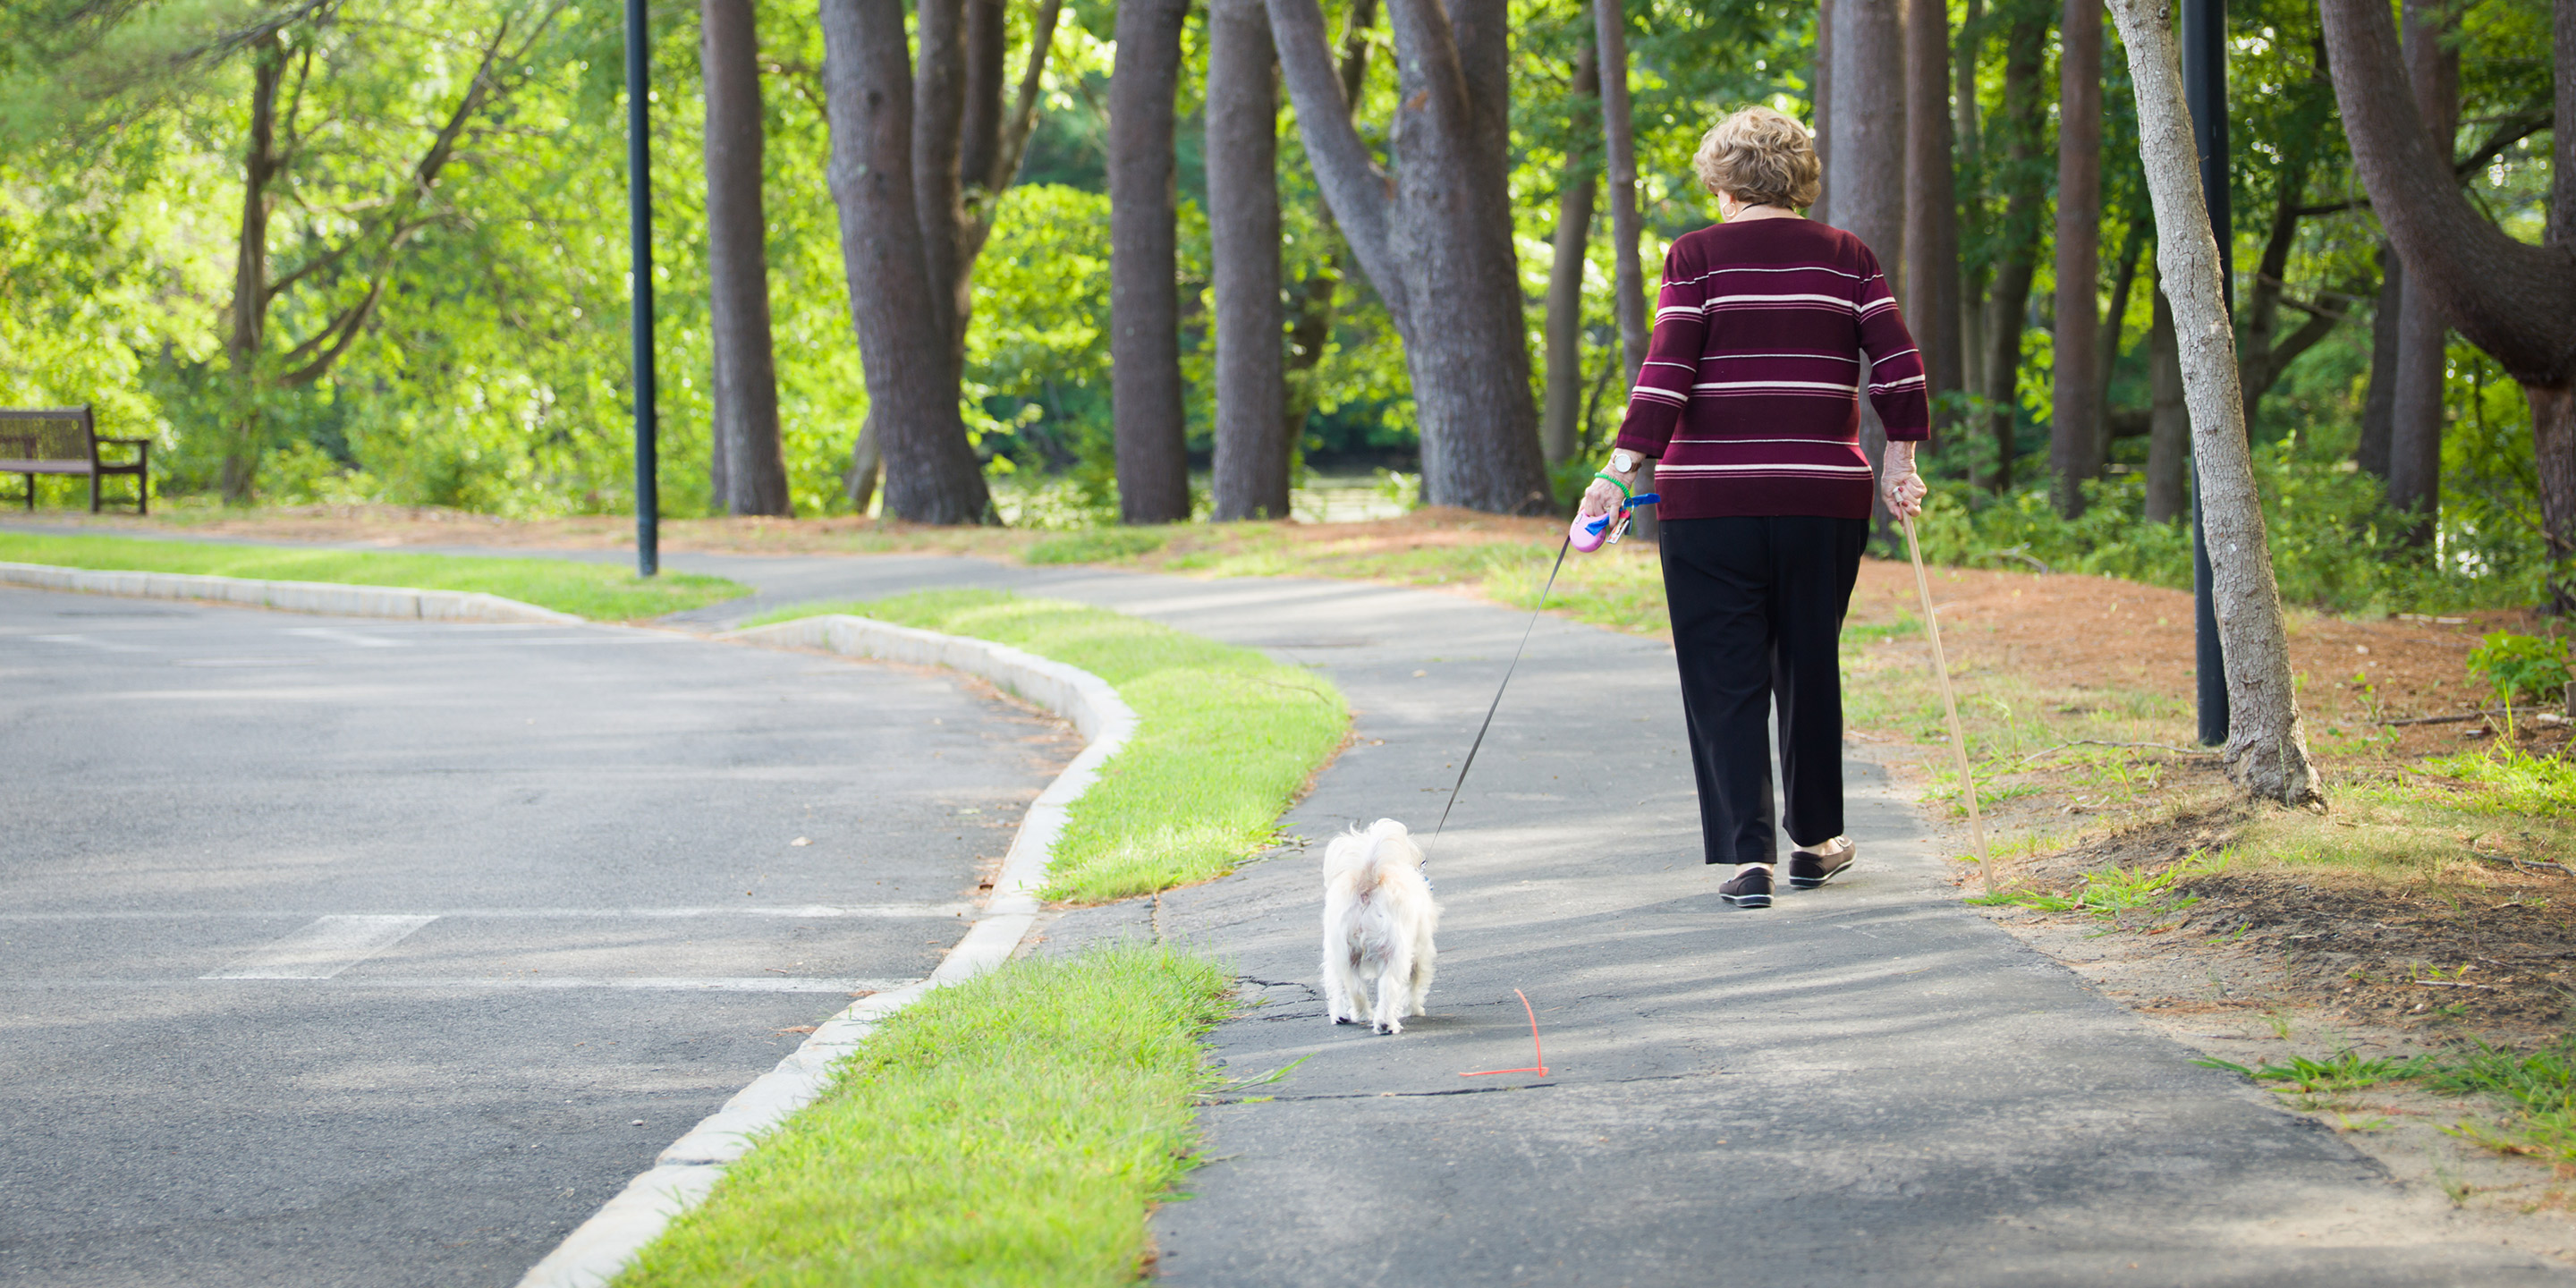 An older adult woman walks on a trail with her dog's leash in one hand and a walking stick in the other.